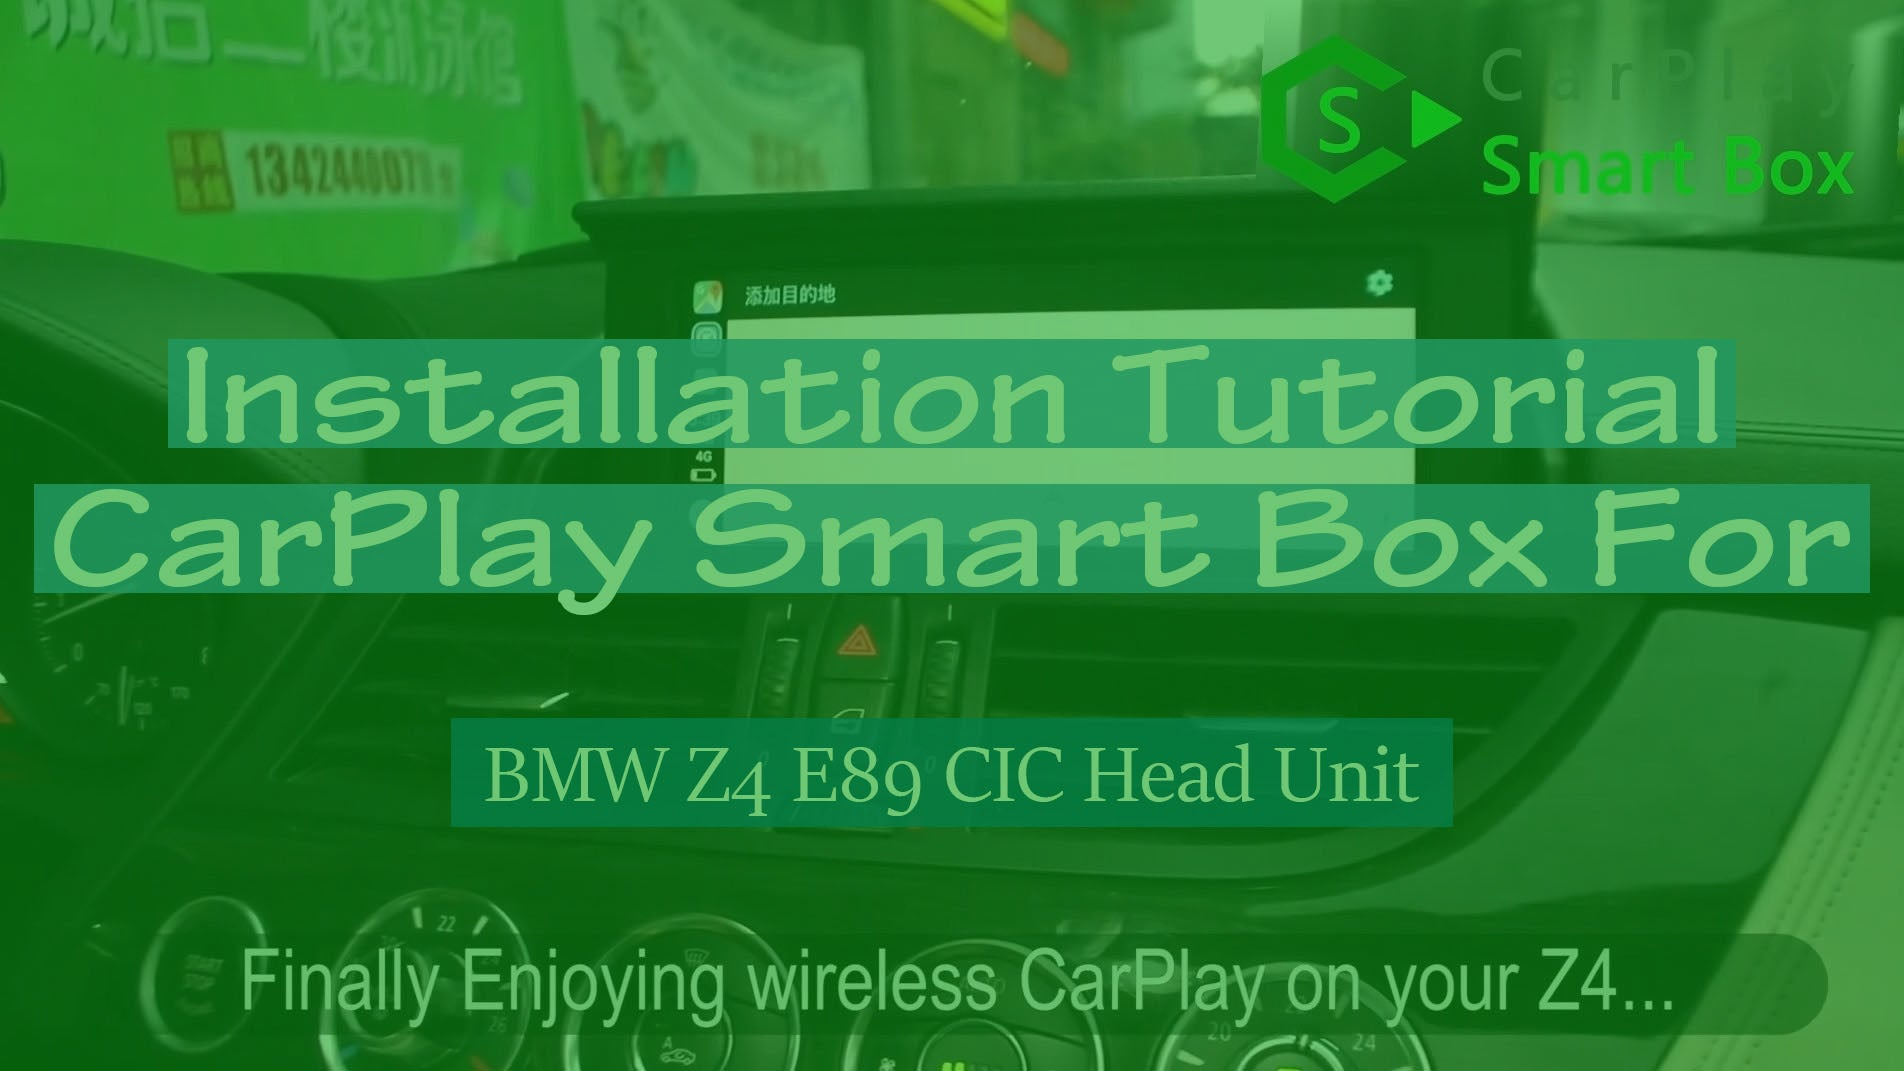 (BMW CIC Head Unit) Wireless Apple CarPlay Smart Box Installation for BMW Z4 E89